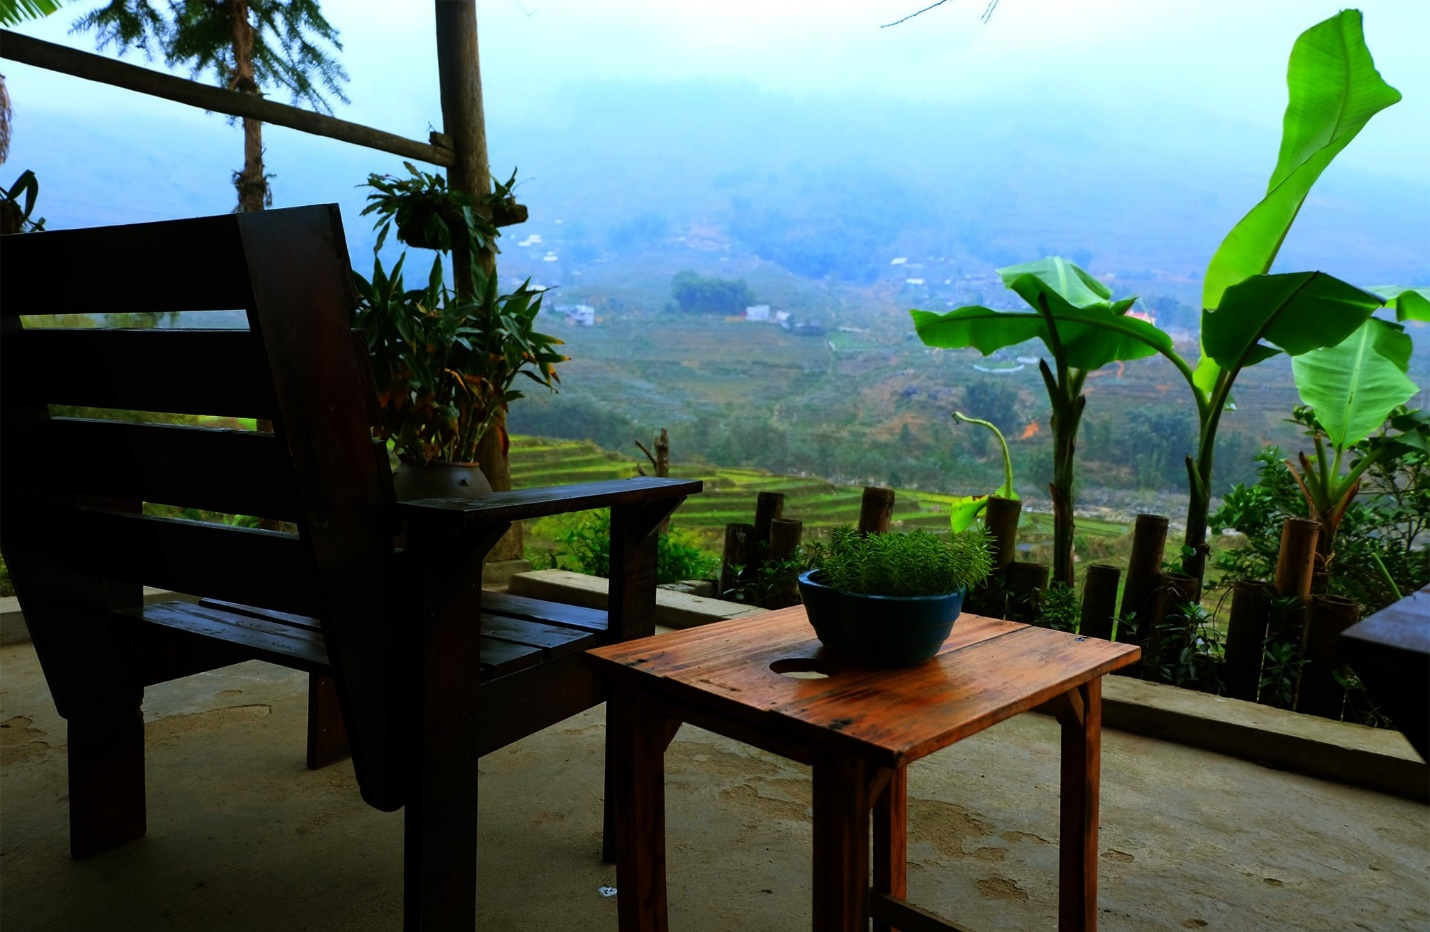 Seating in front of Sali House and having a cup of coffee is really wonderful